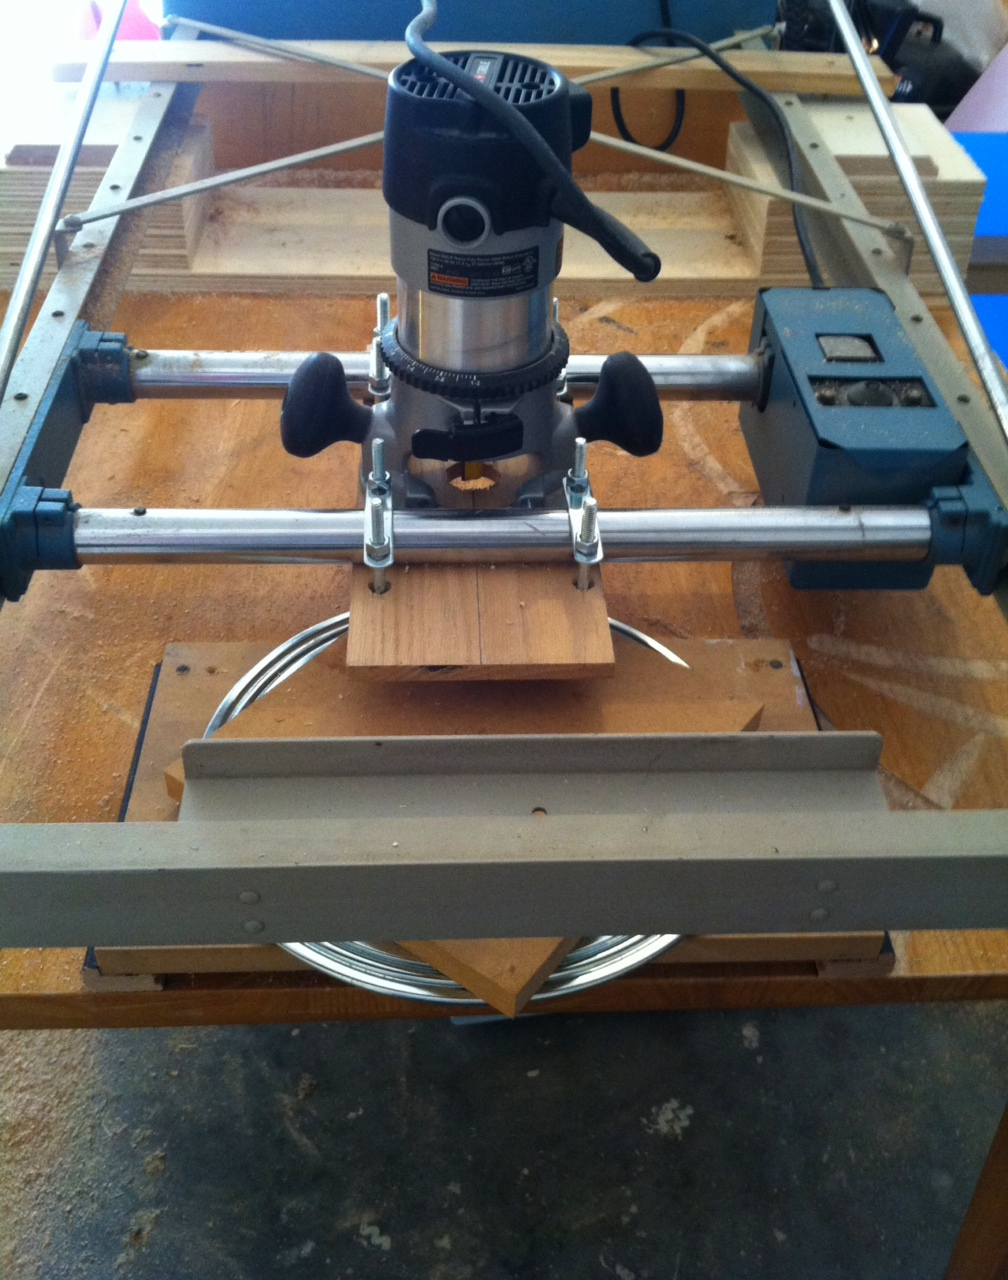 New router table now in effect eikonktizo the active ingredient is a mid range porter cable plunging router the router has been attached to greentooth Image collections